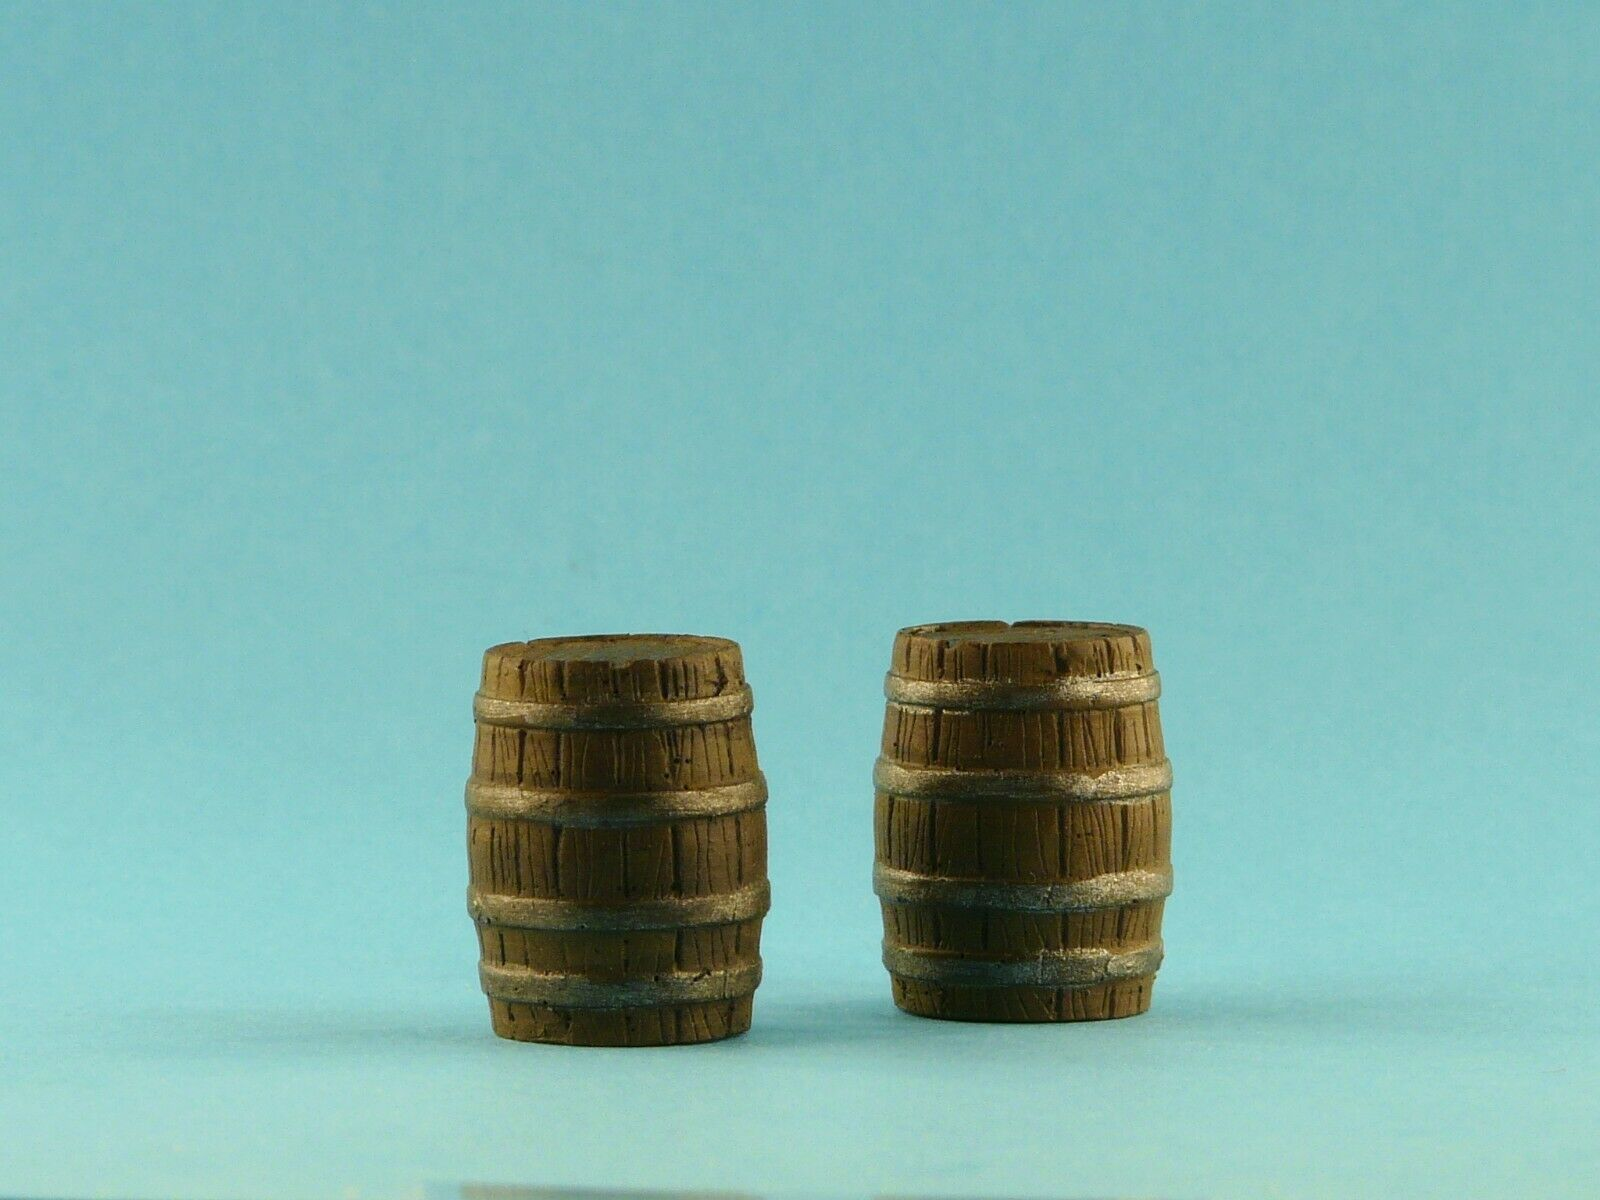 1/48 Beer Barrels Kit Scale Modelling Stowage & Diorama Accessories - redoguk